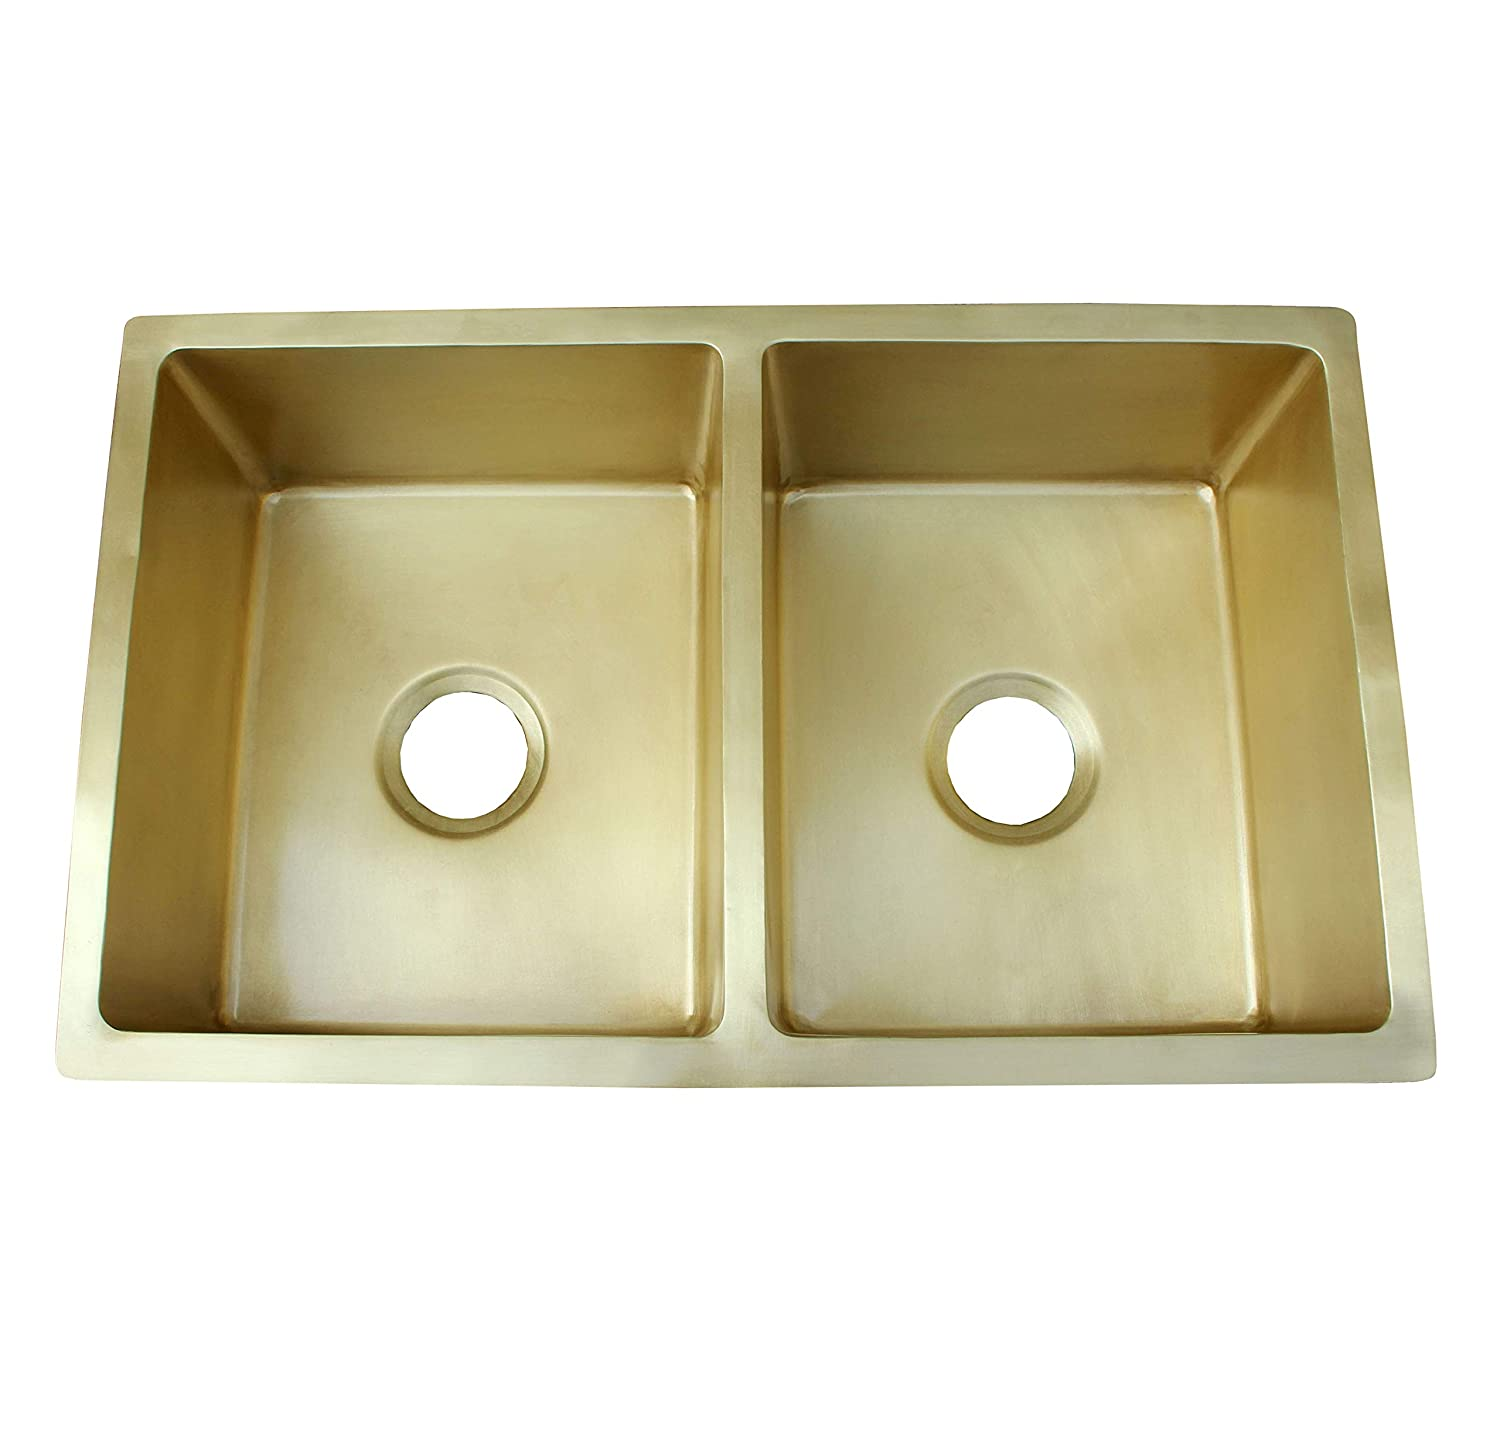 Double Basin Farmhouse Sink Smooth Brass Handcrafted by ...